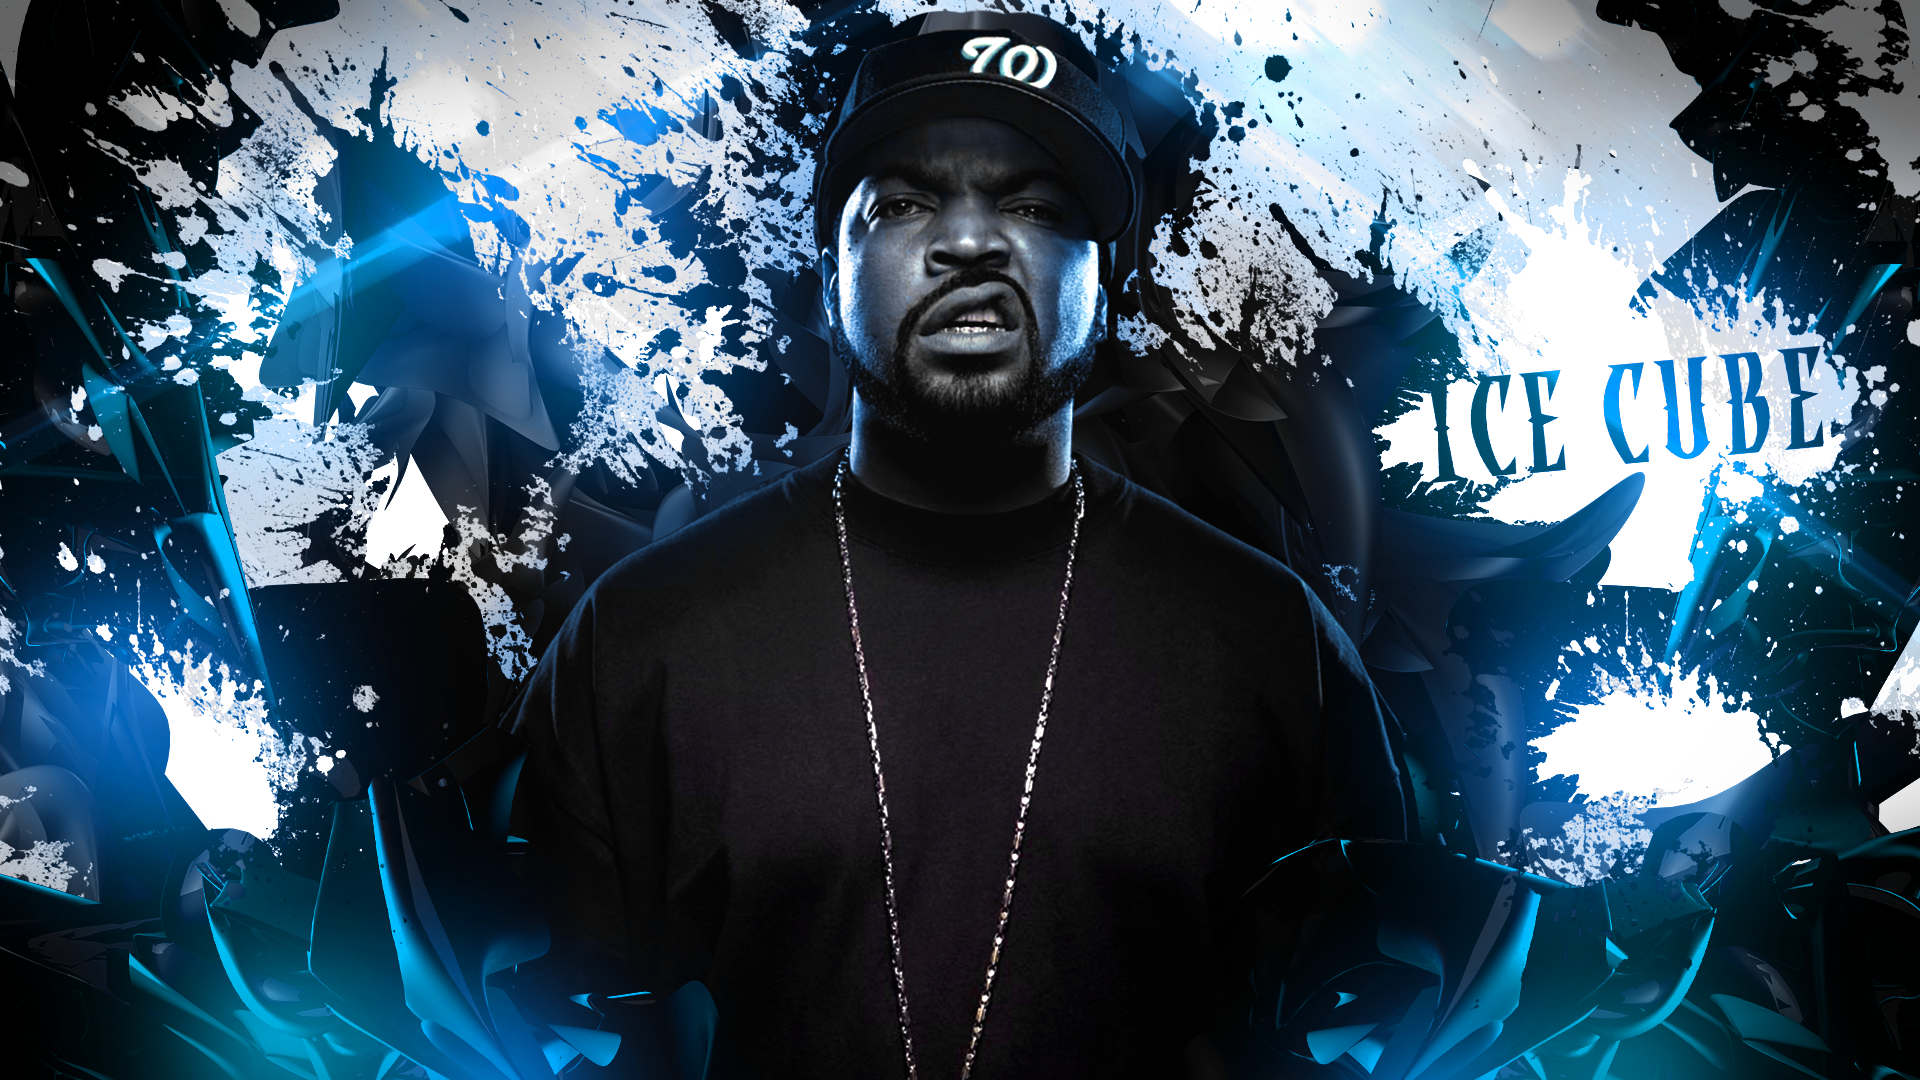 360haven Home Home Widescreen Wallpaper Ice Cube Rapper Desktop Wallpapers Backgrounds